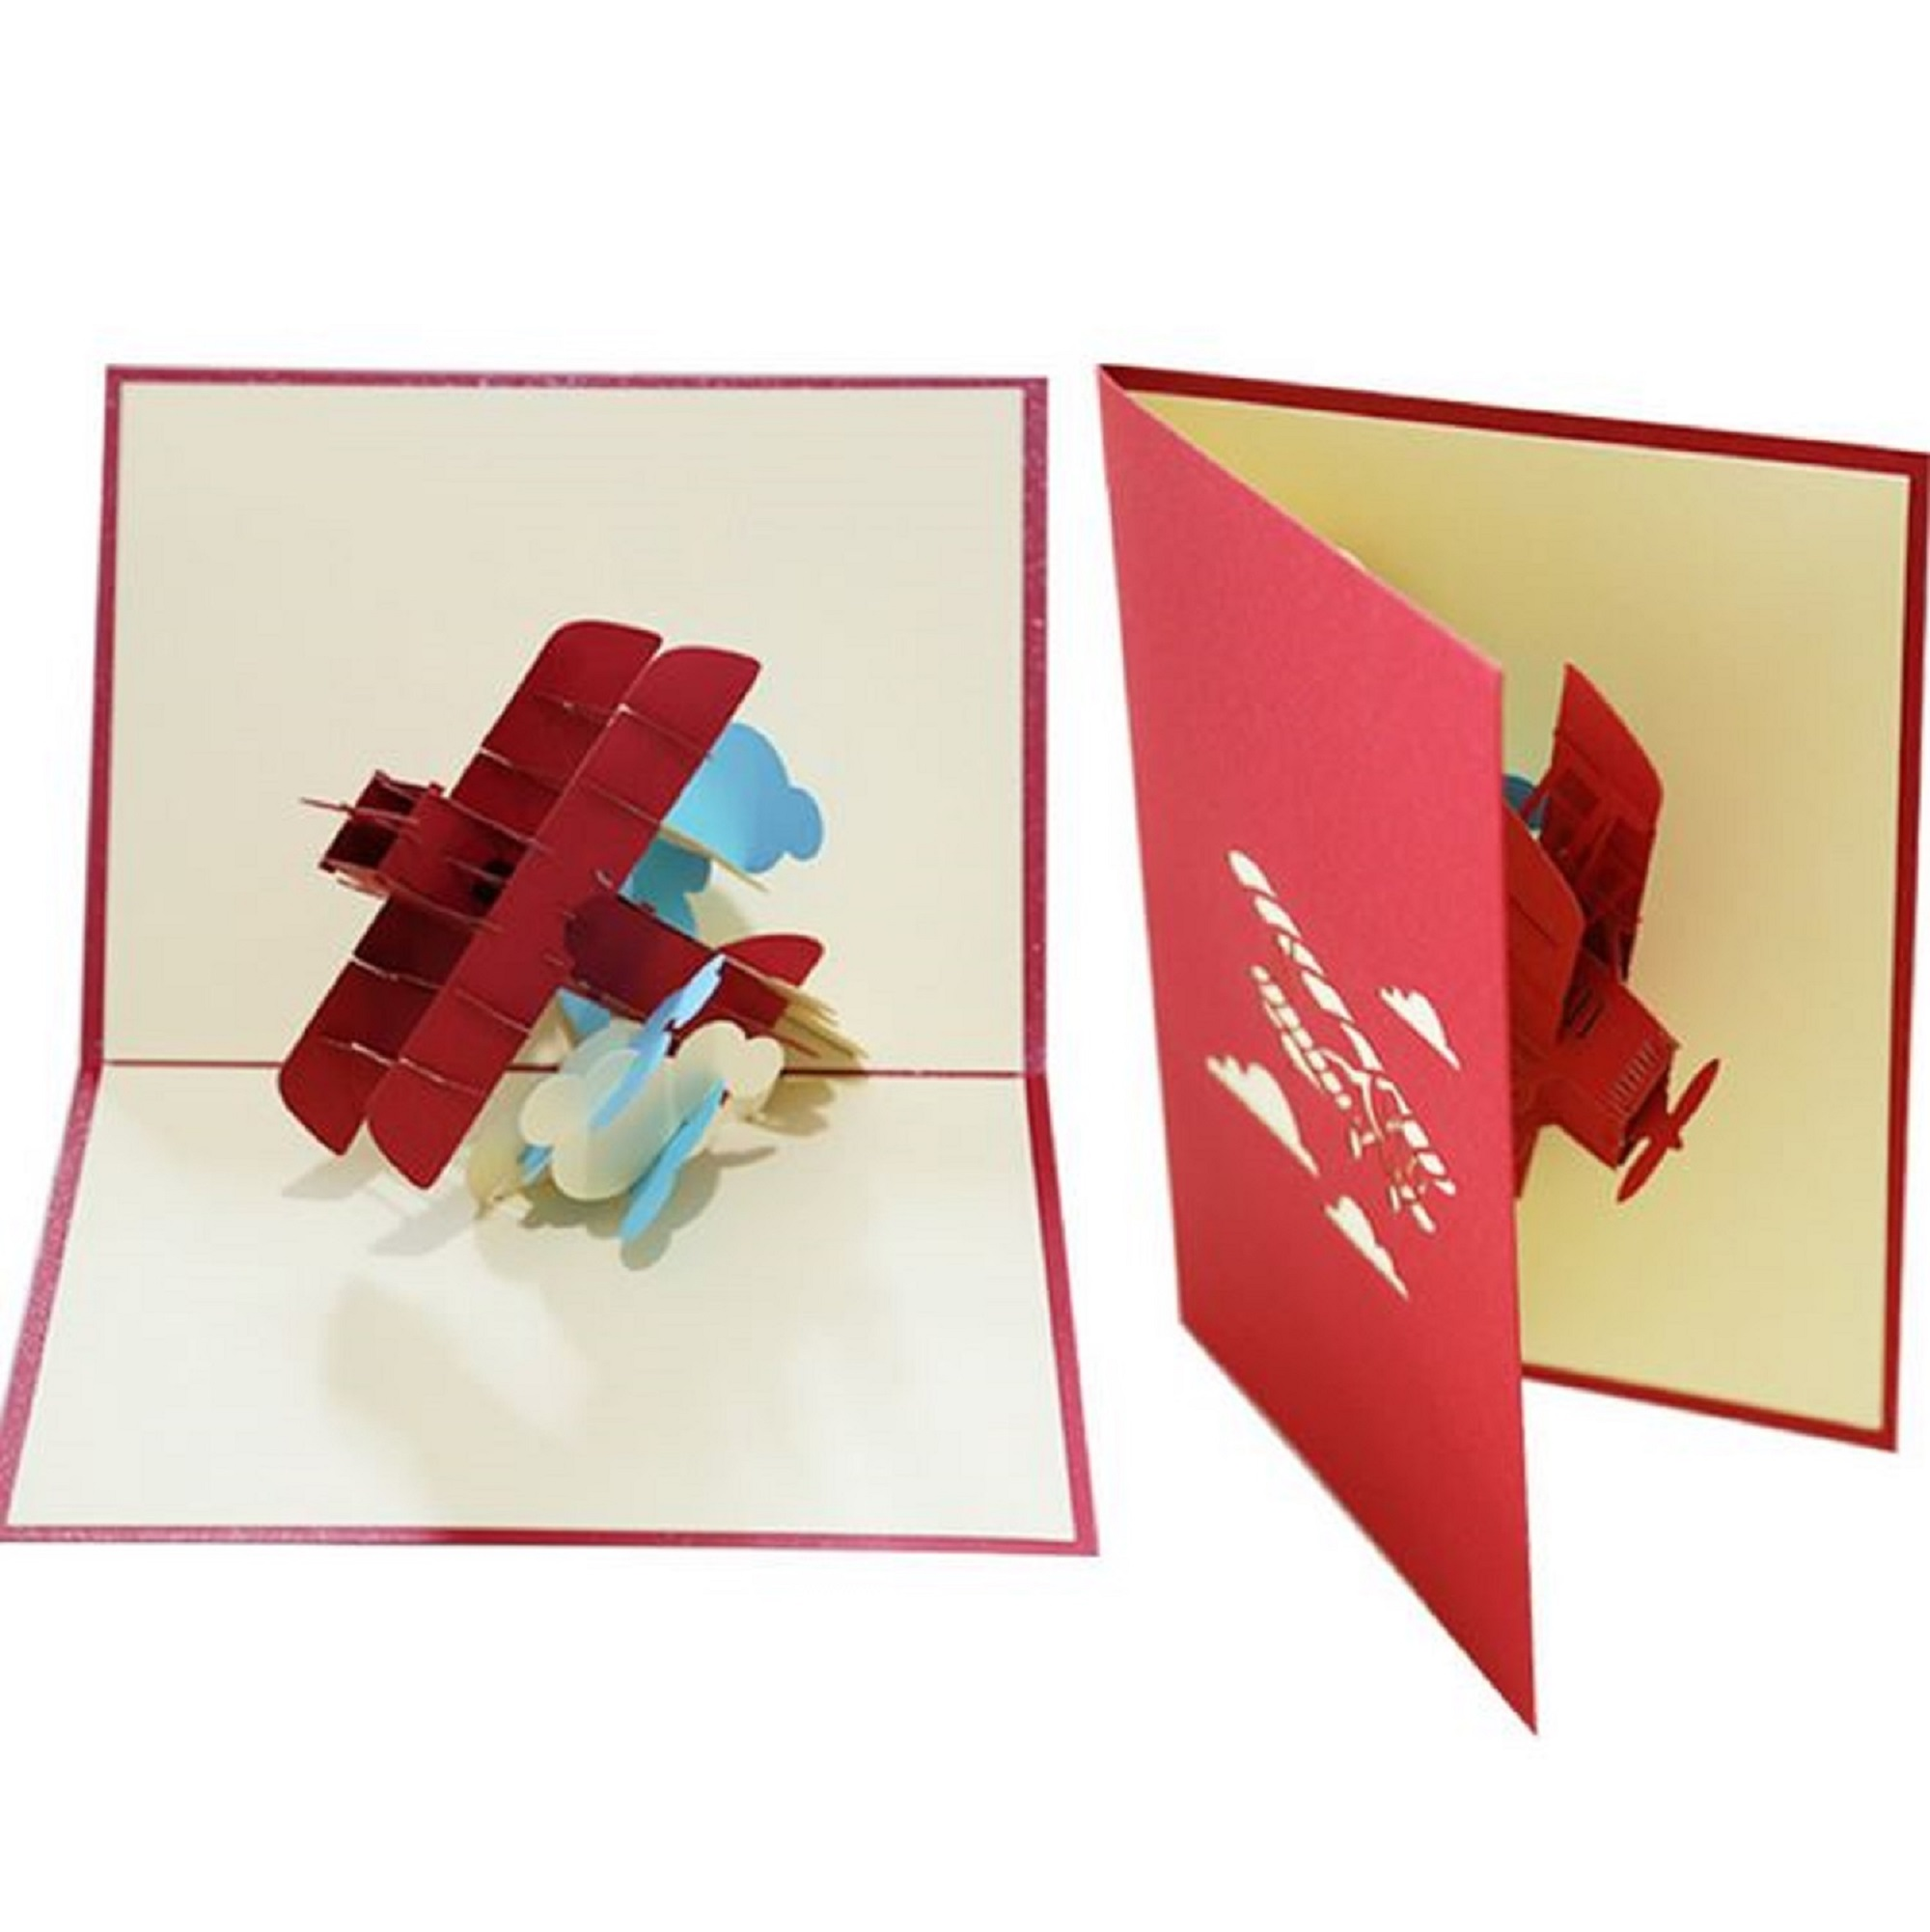 Remarkable Handmade 3D Popup Birthday Card Biplane Fathers Day Wedding Funny Birthday Cards Online Fluifree Goldxyz